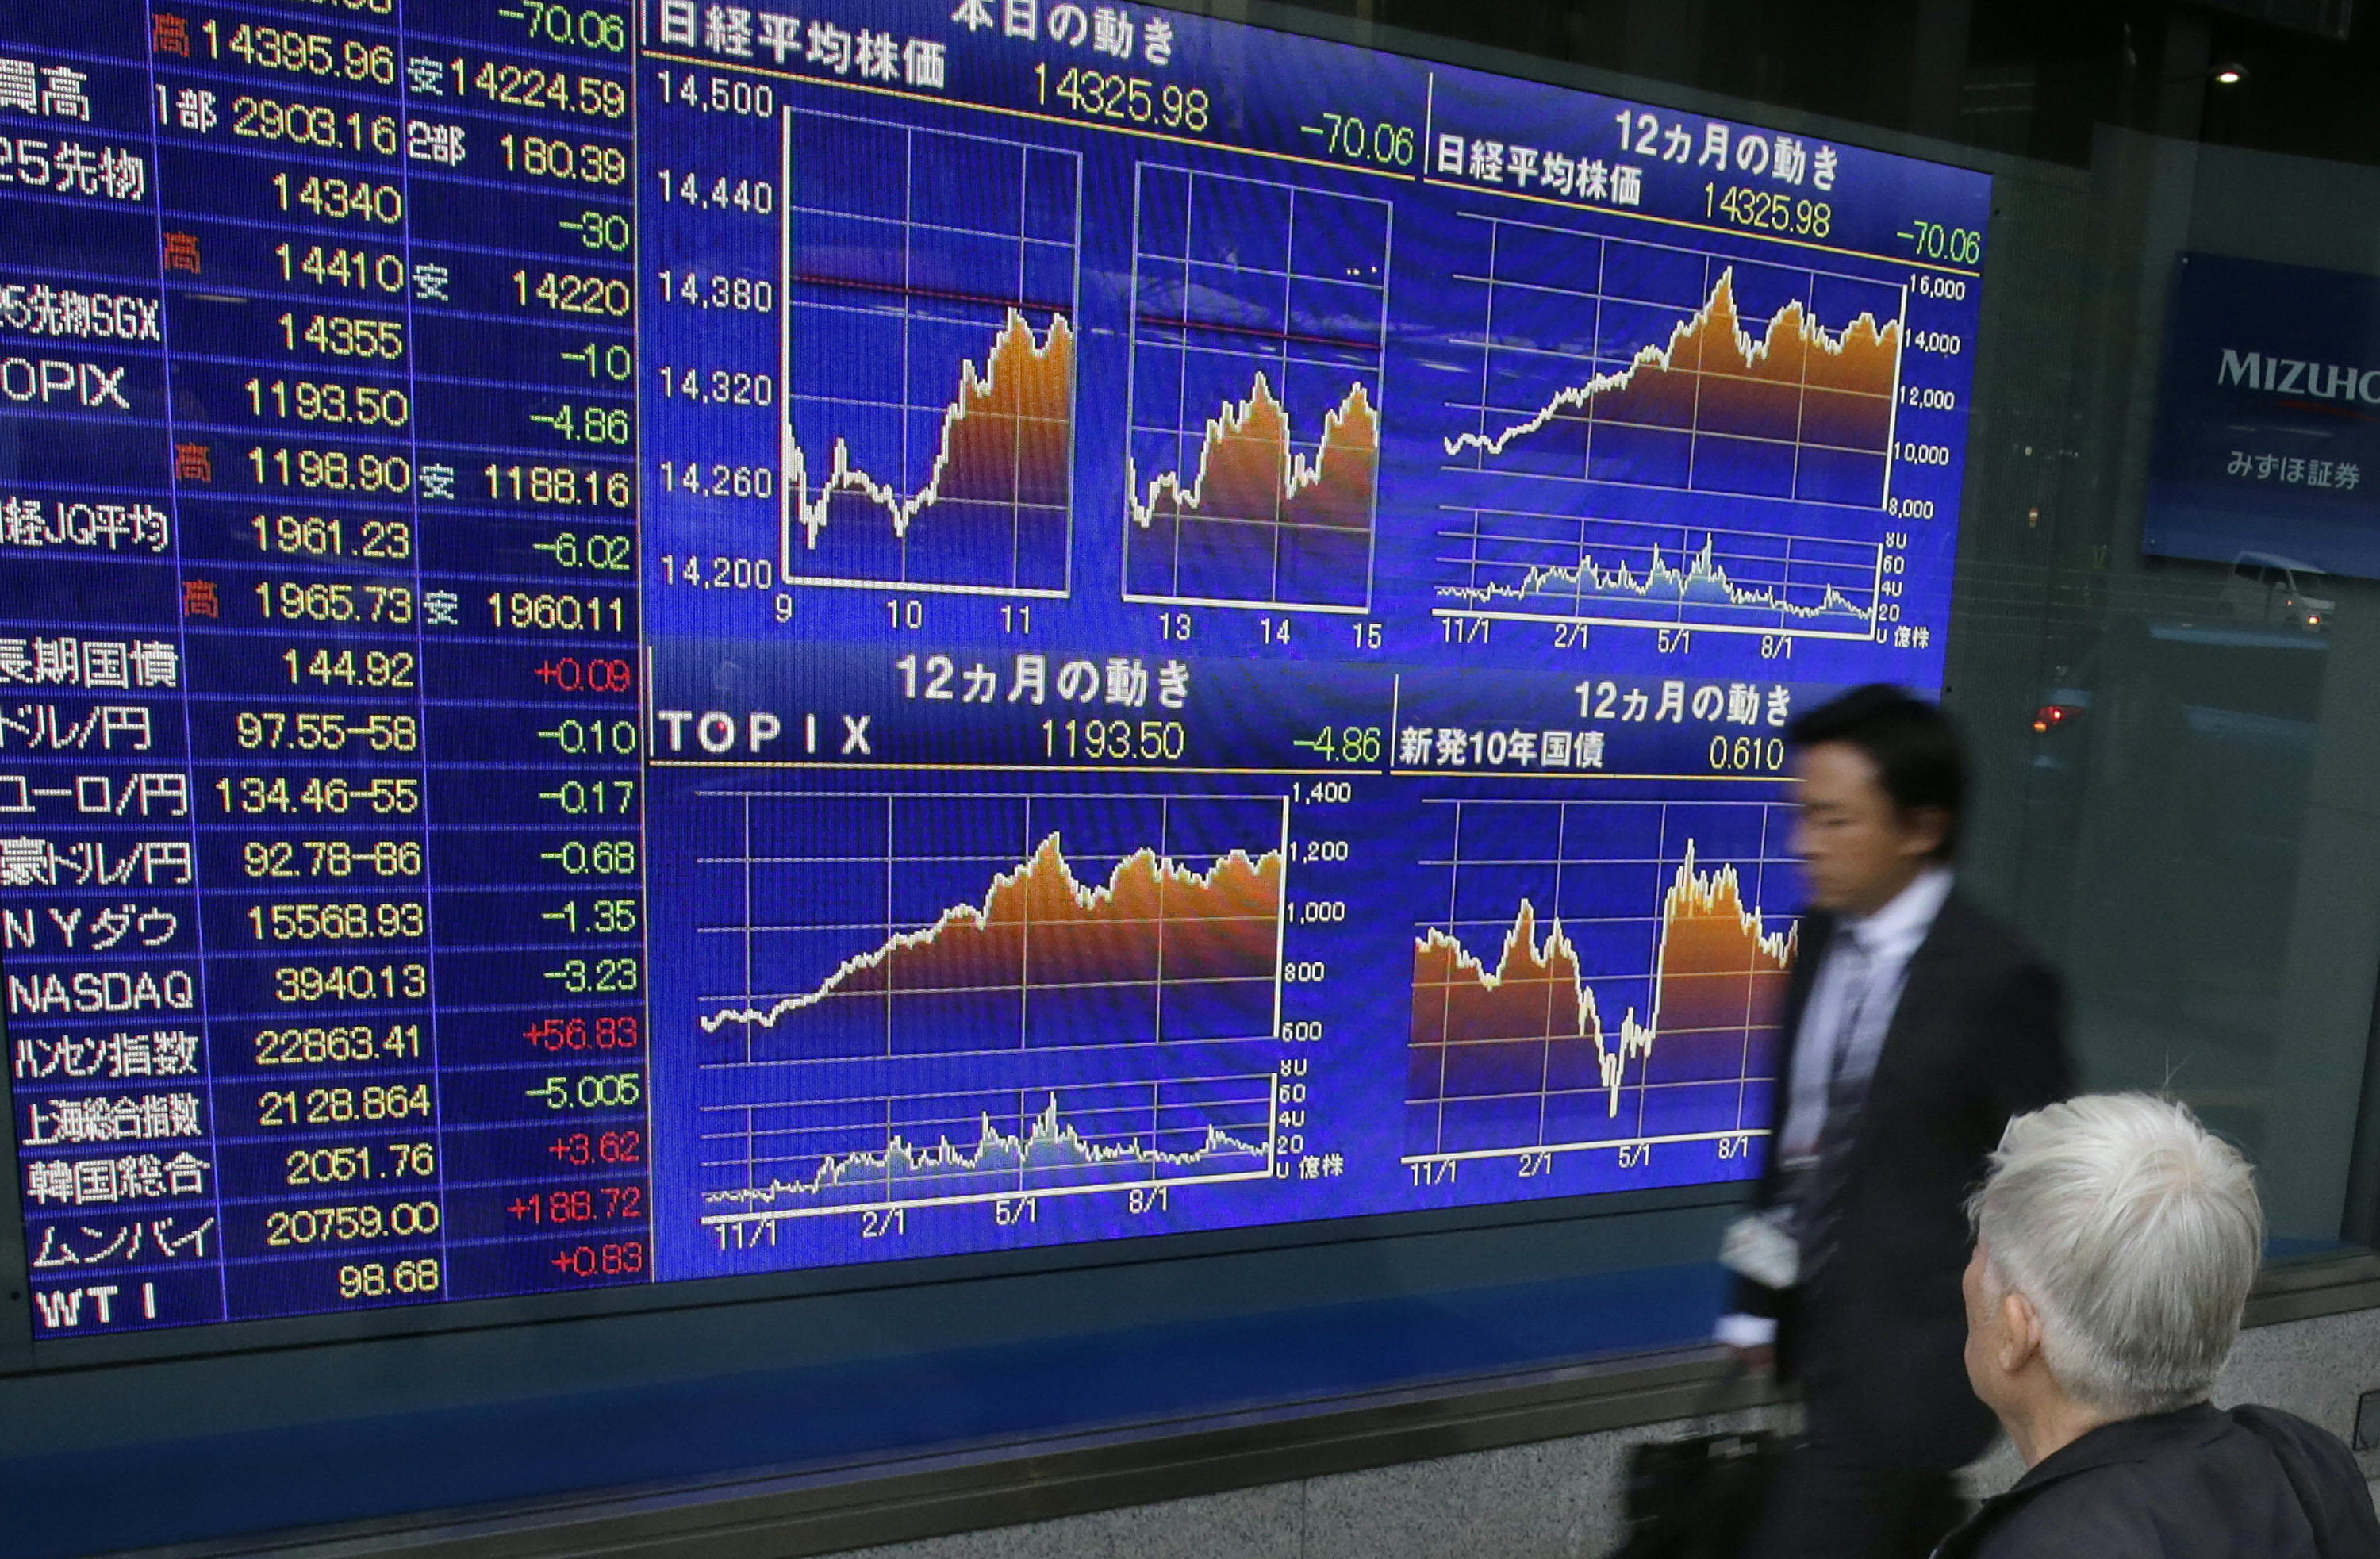 Japan World Markets